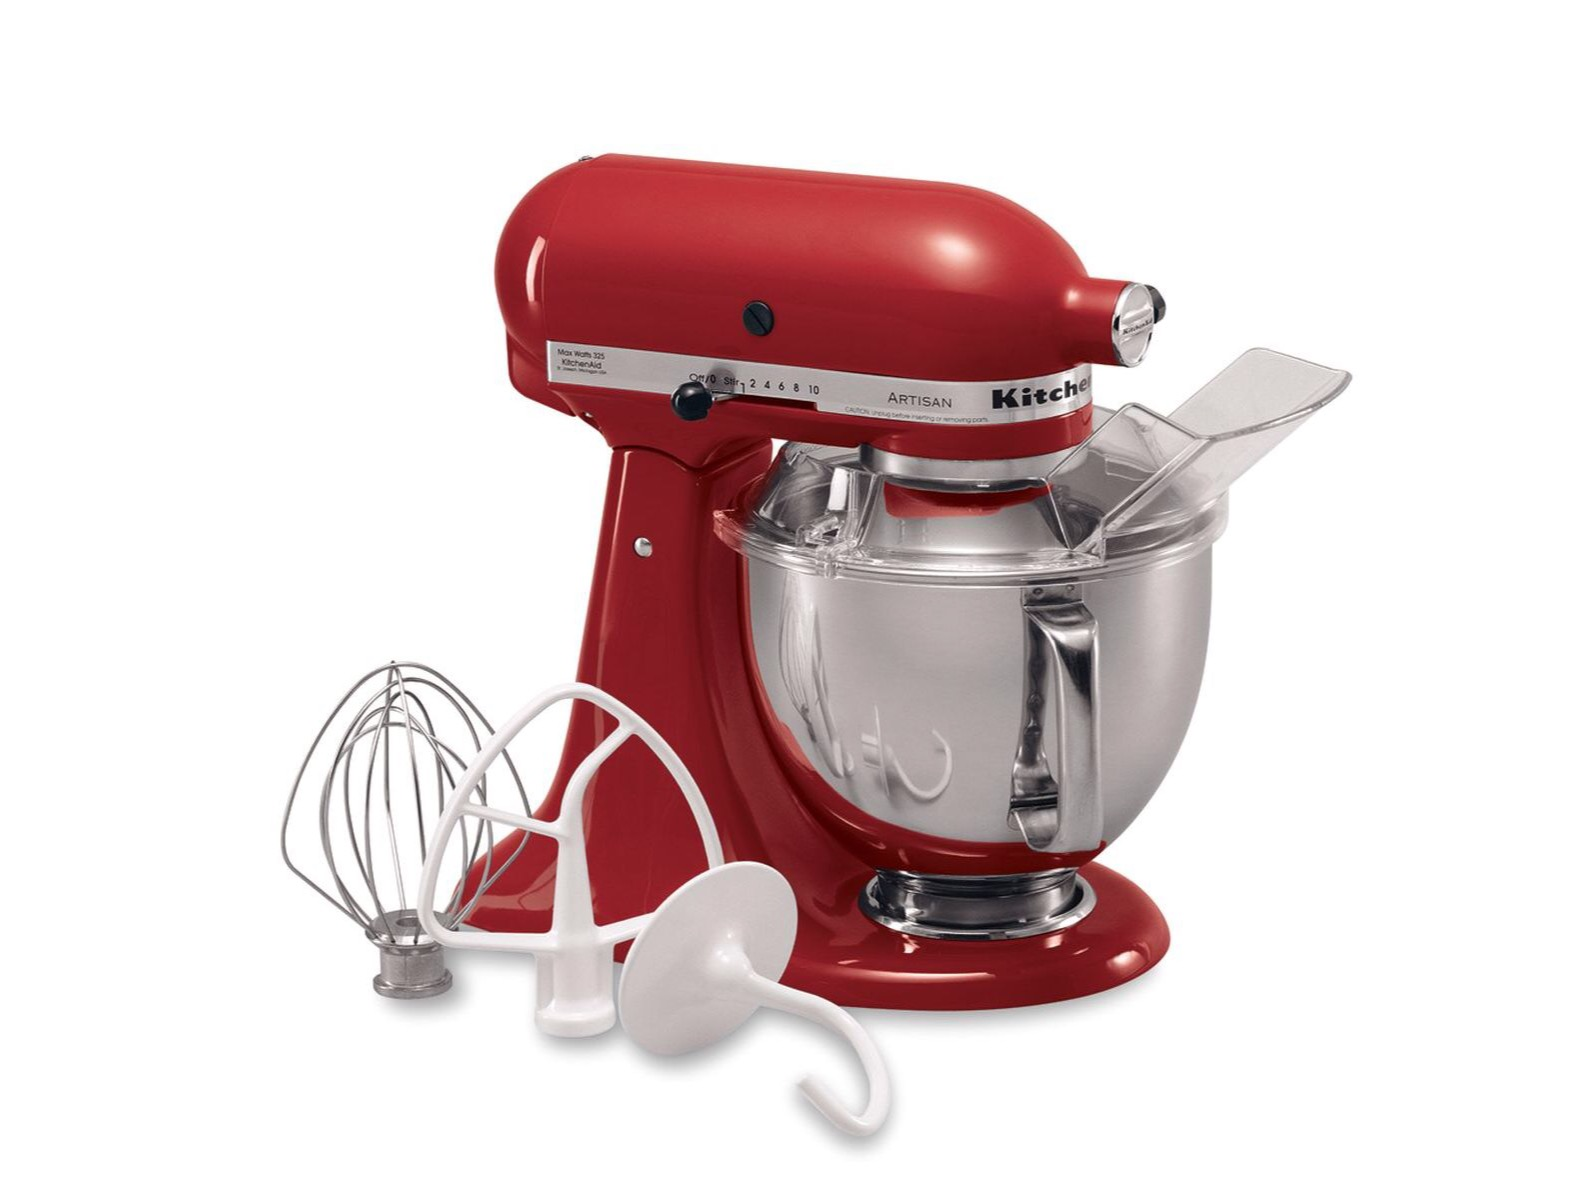 KitchenAid's Artisan stand mixer. (Price varies based on color)